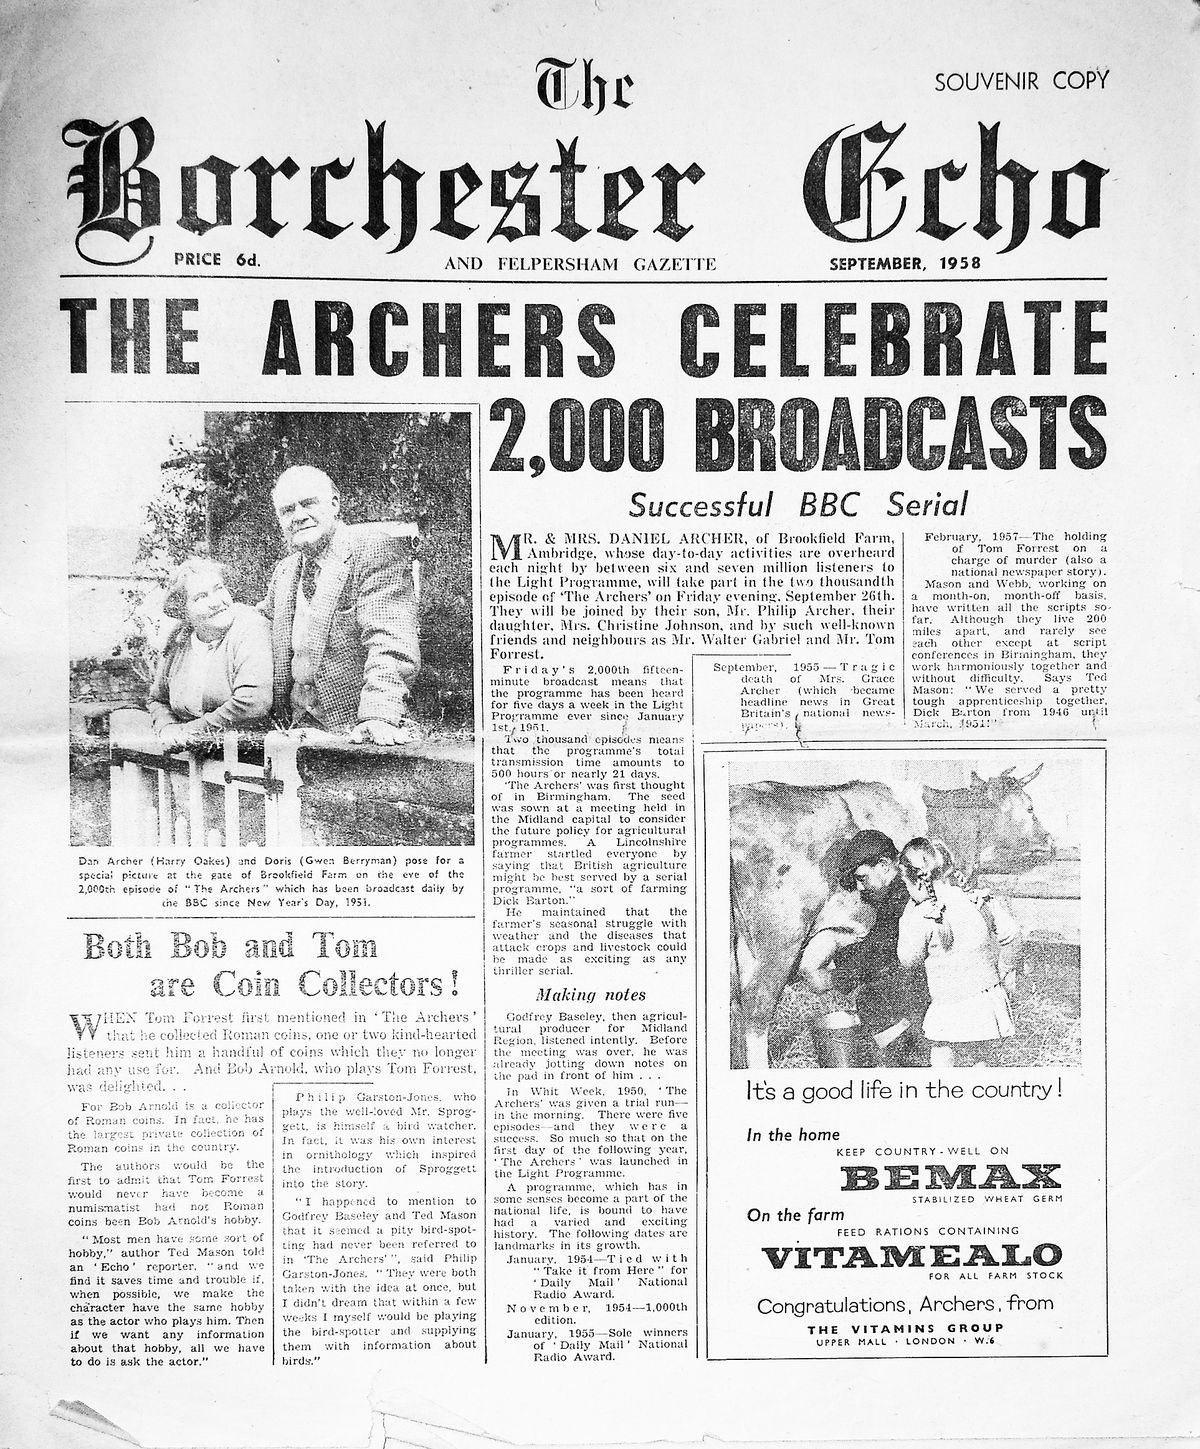 The Borchester Echo and Felpersham Gazette was a souvenir newspaper in 1958 to celebrate 2,000 broadcasts of the Archers.